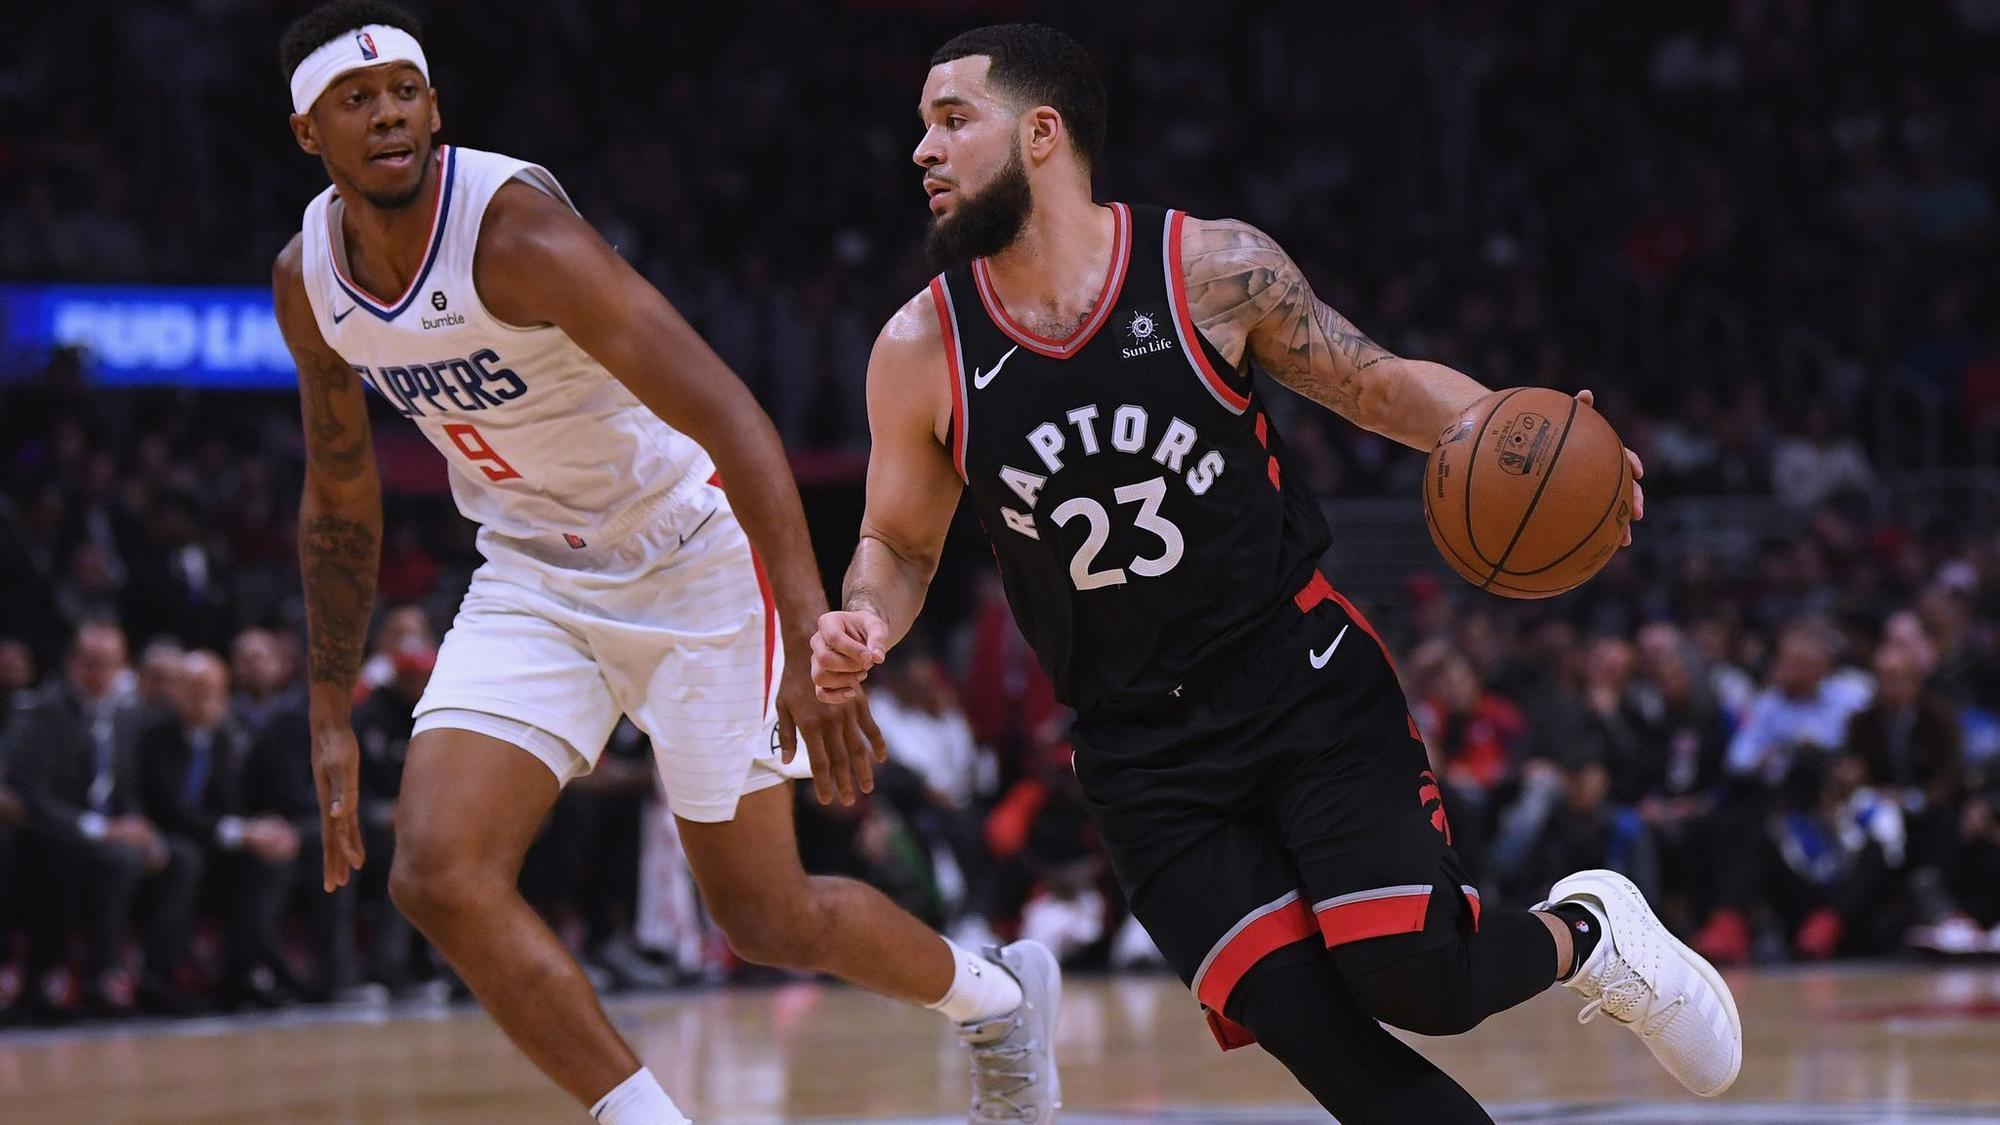 Clippers suffer through an off night in 123-99 loss to Raptors